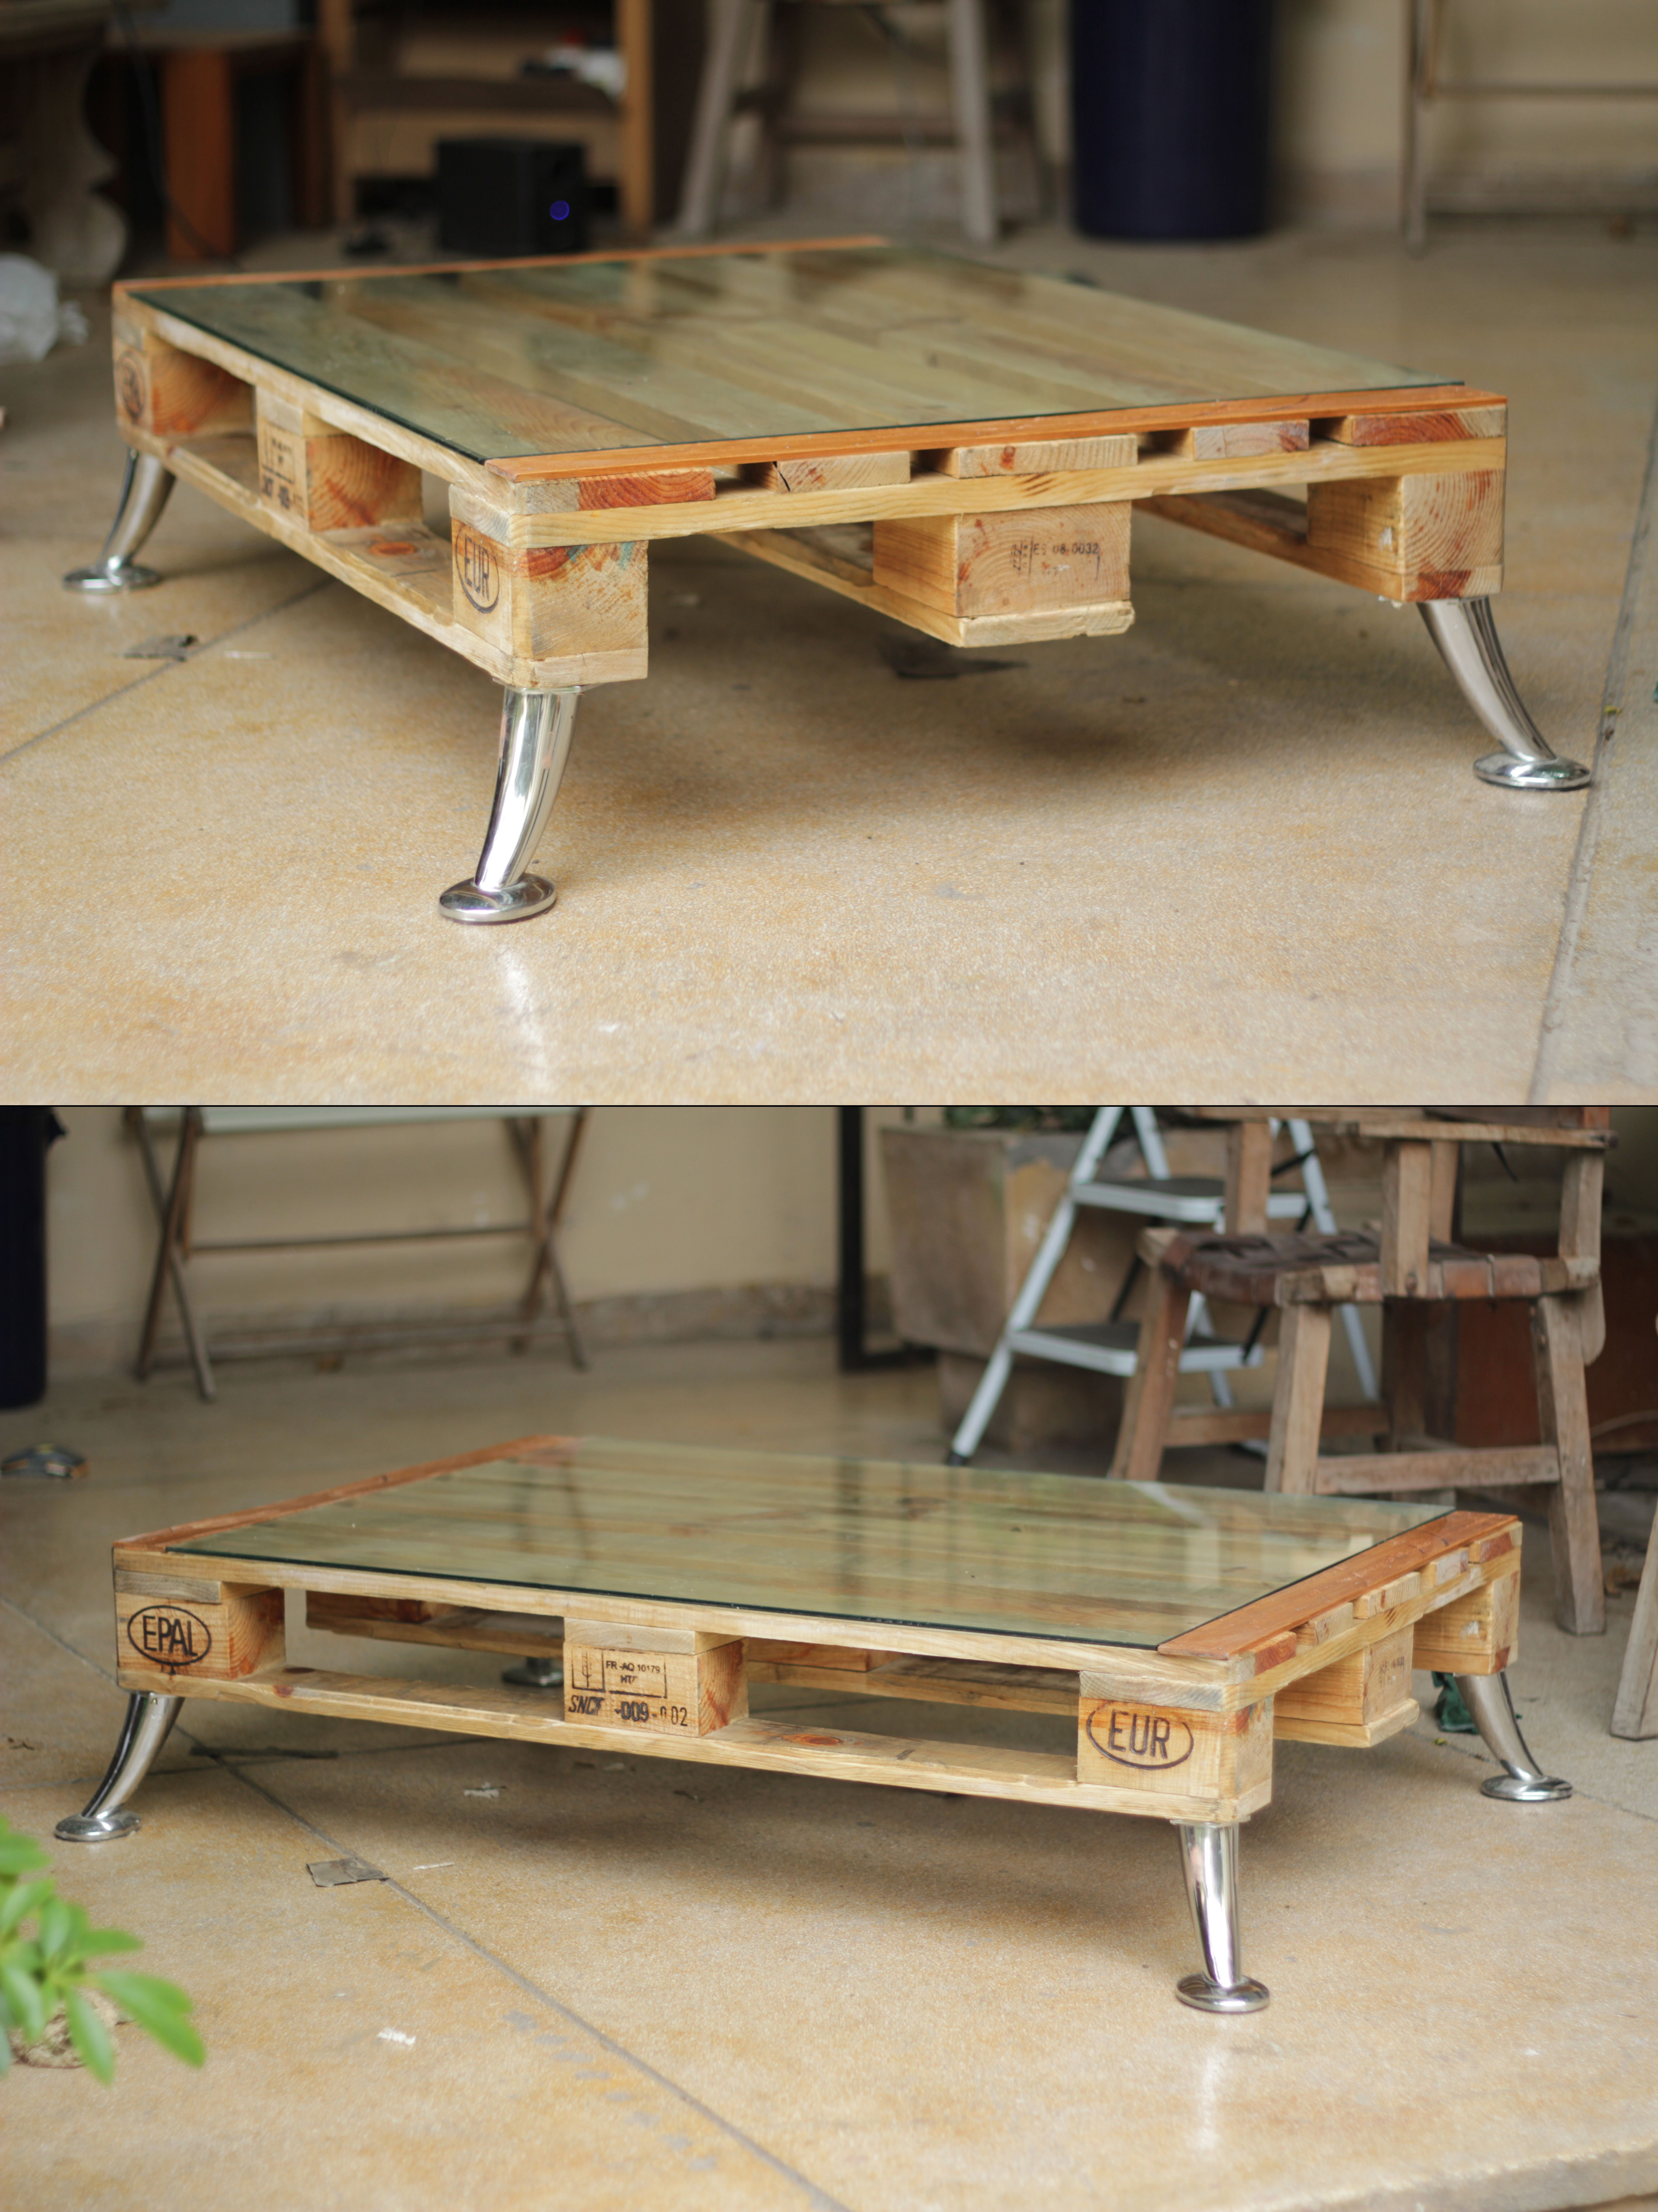 Pallet Table Upcycled Ideas For Hostels Pinterest Reciclado  # Muebles Rusticos Gipuzkoa